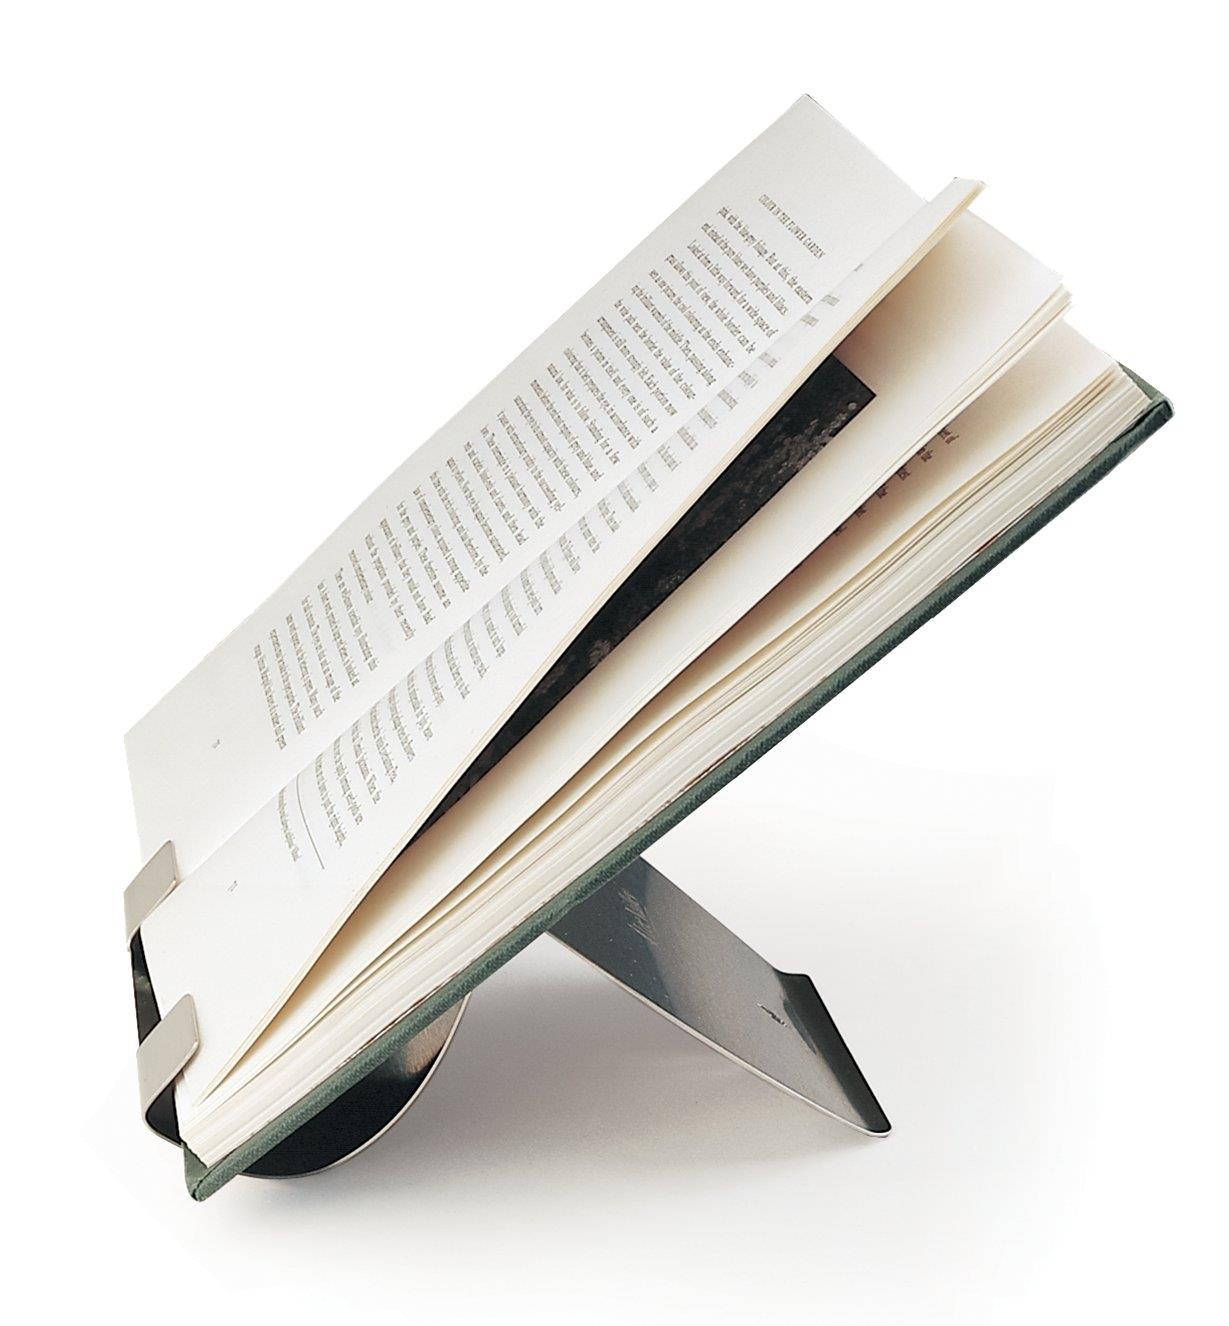 Stainless-Steel Book Holder holding a hardcover book